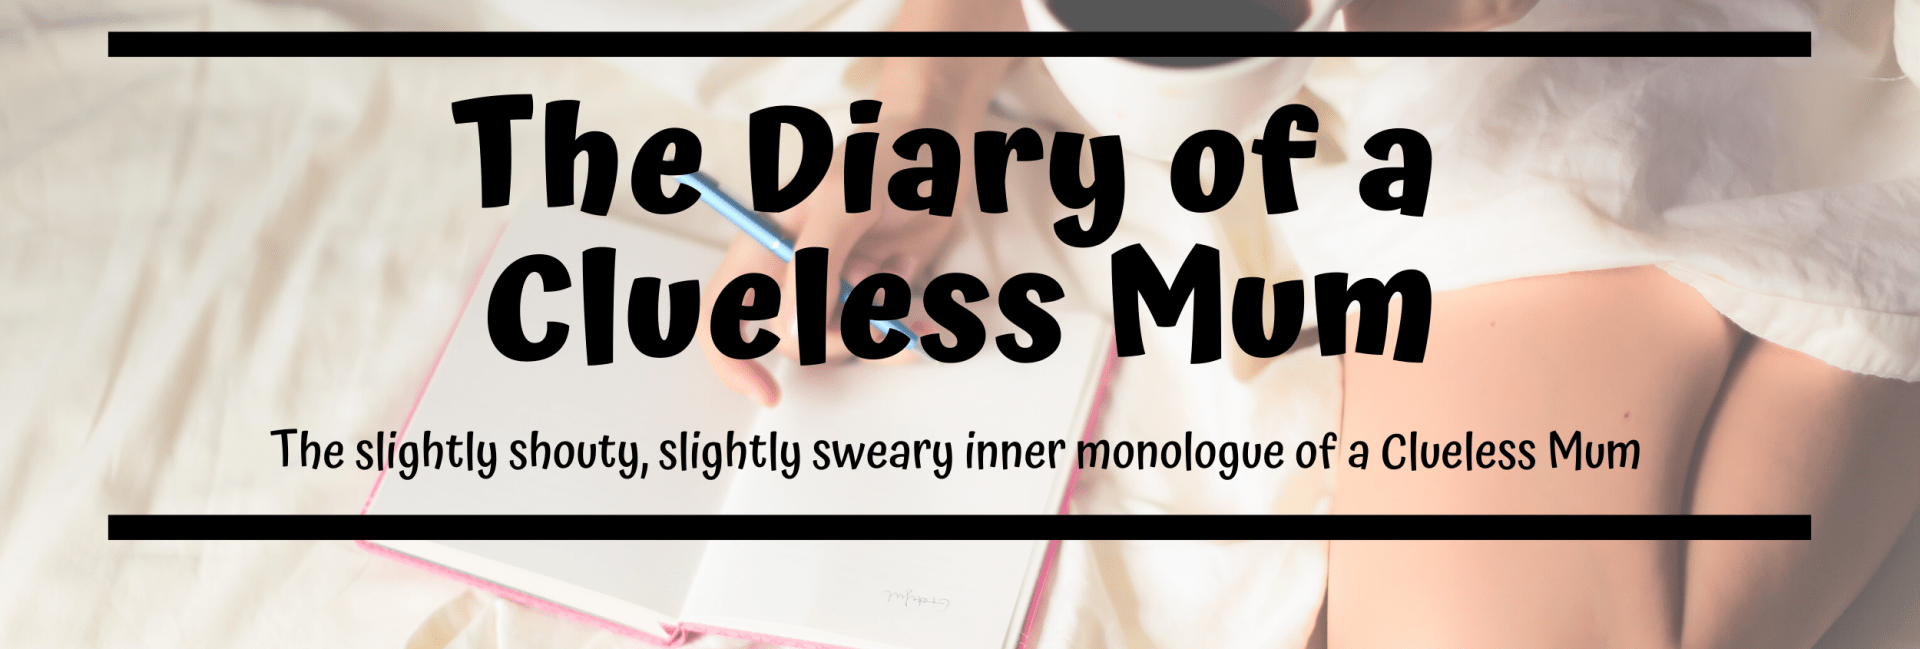 The Diary of a Clueless Mum #1